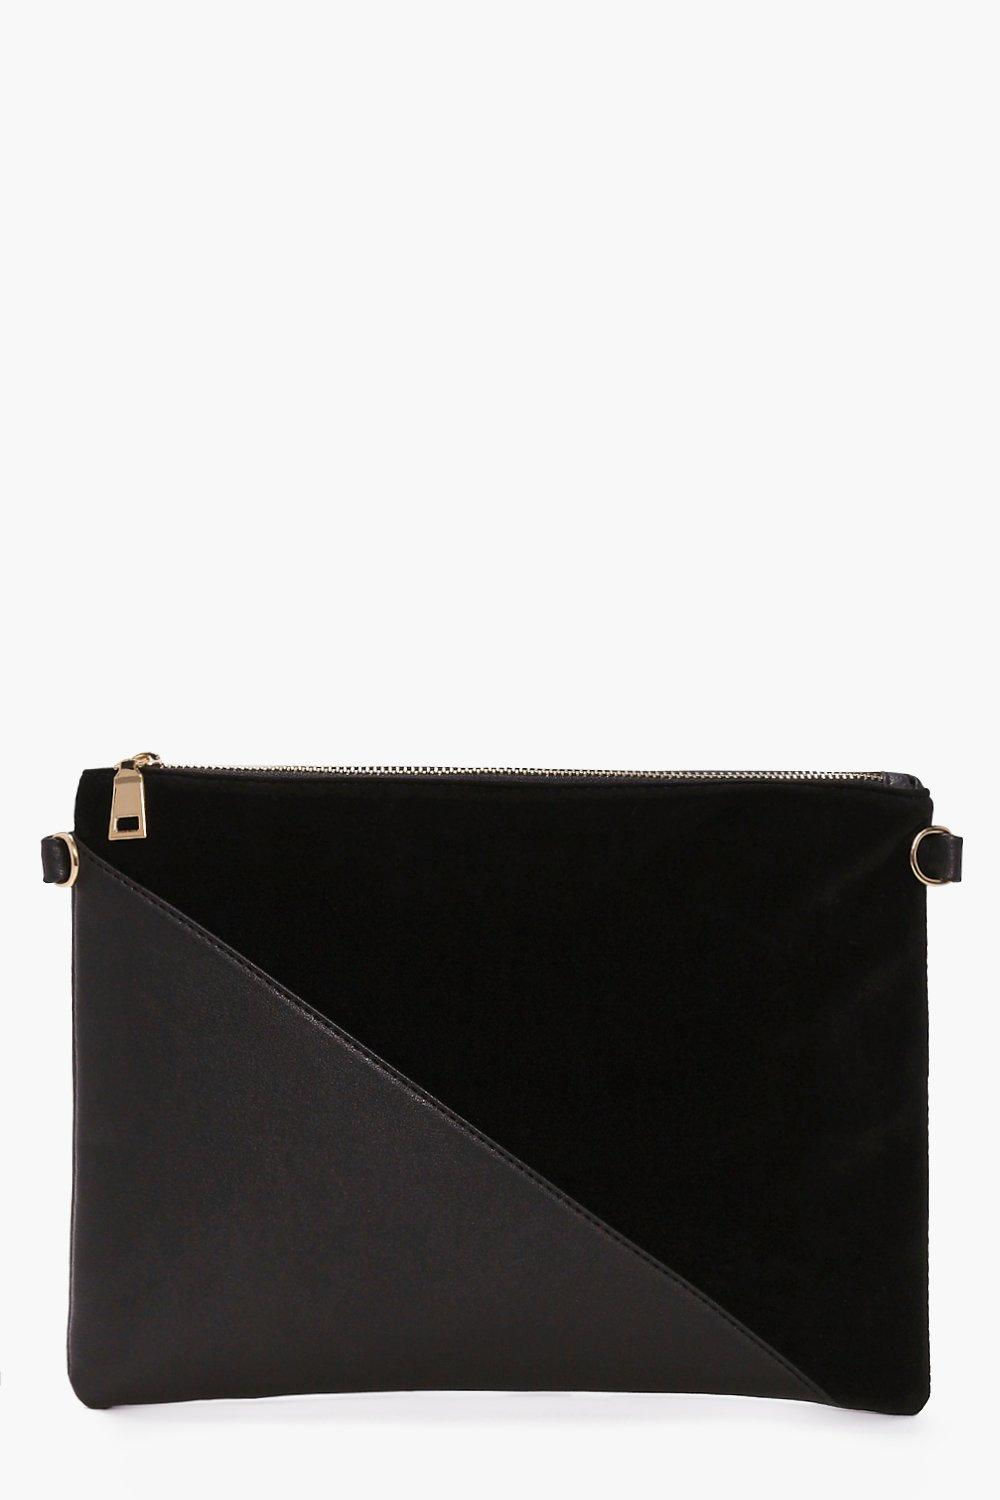 Olivia Contrast Panel Clutch Bag